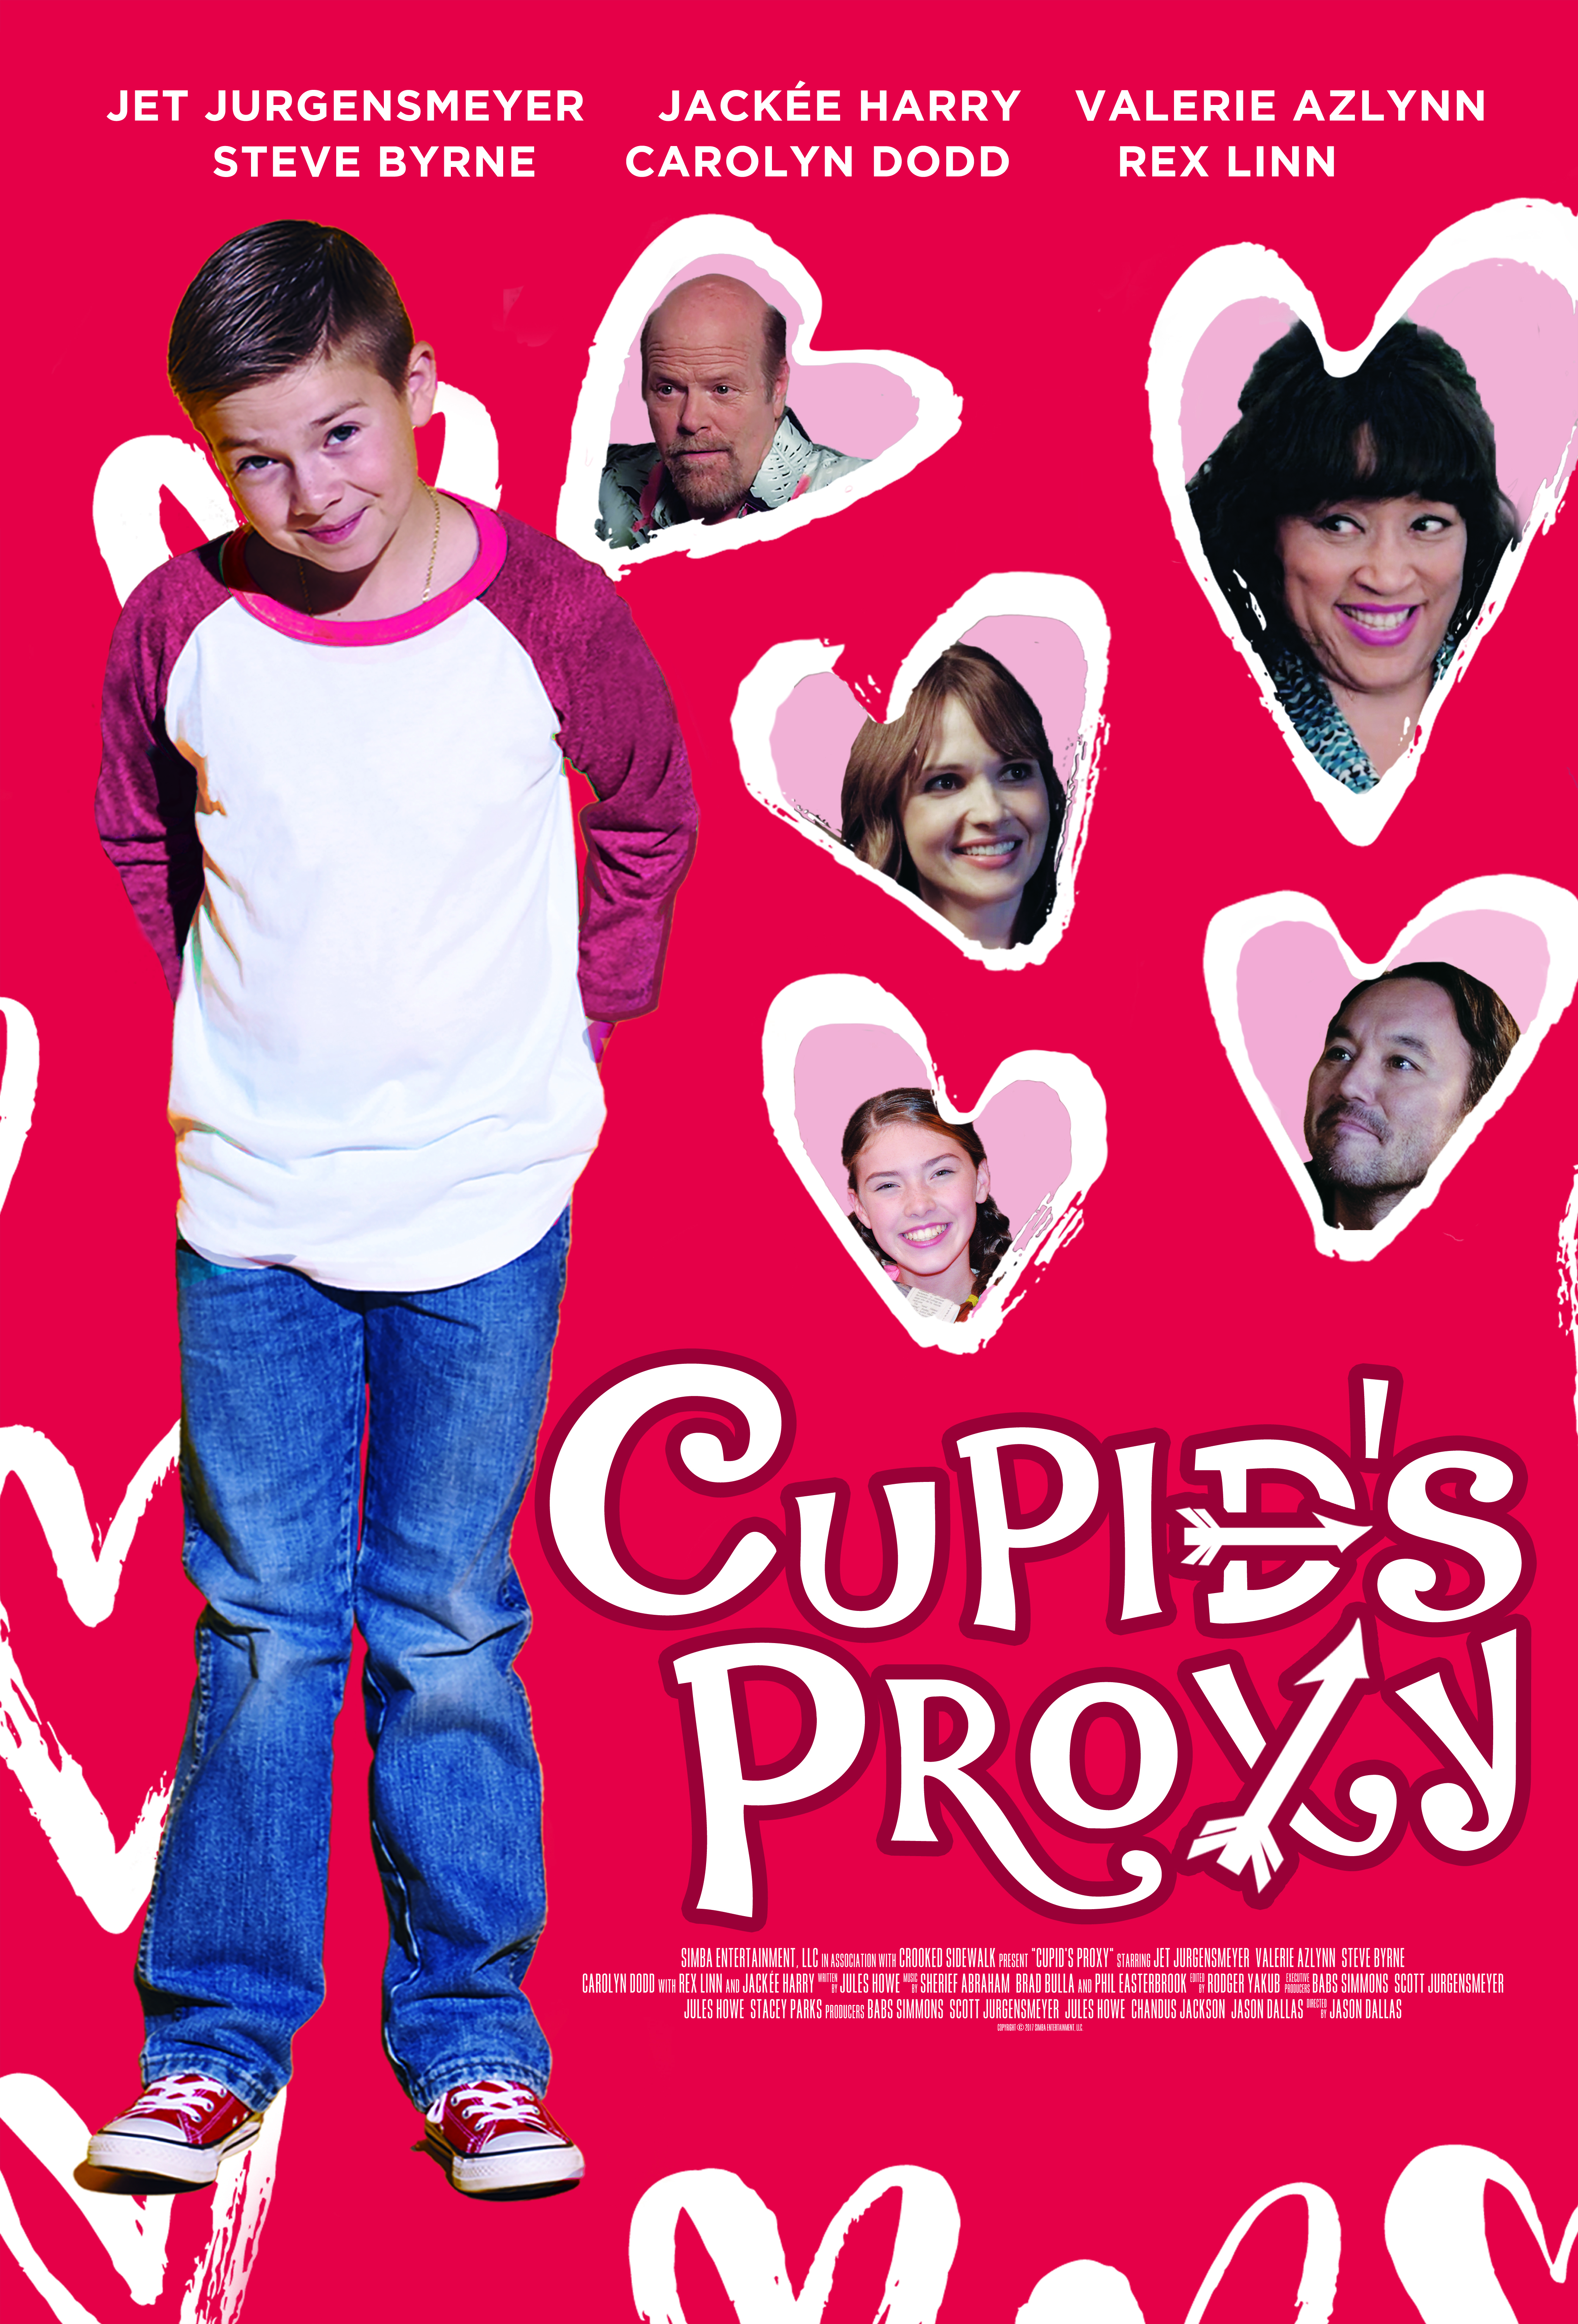 Cupids Proxy hd on soap2day